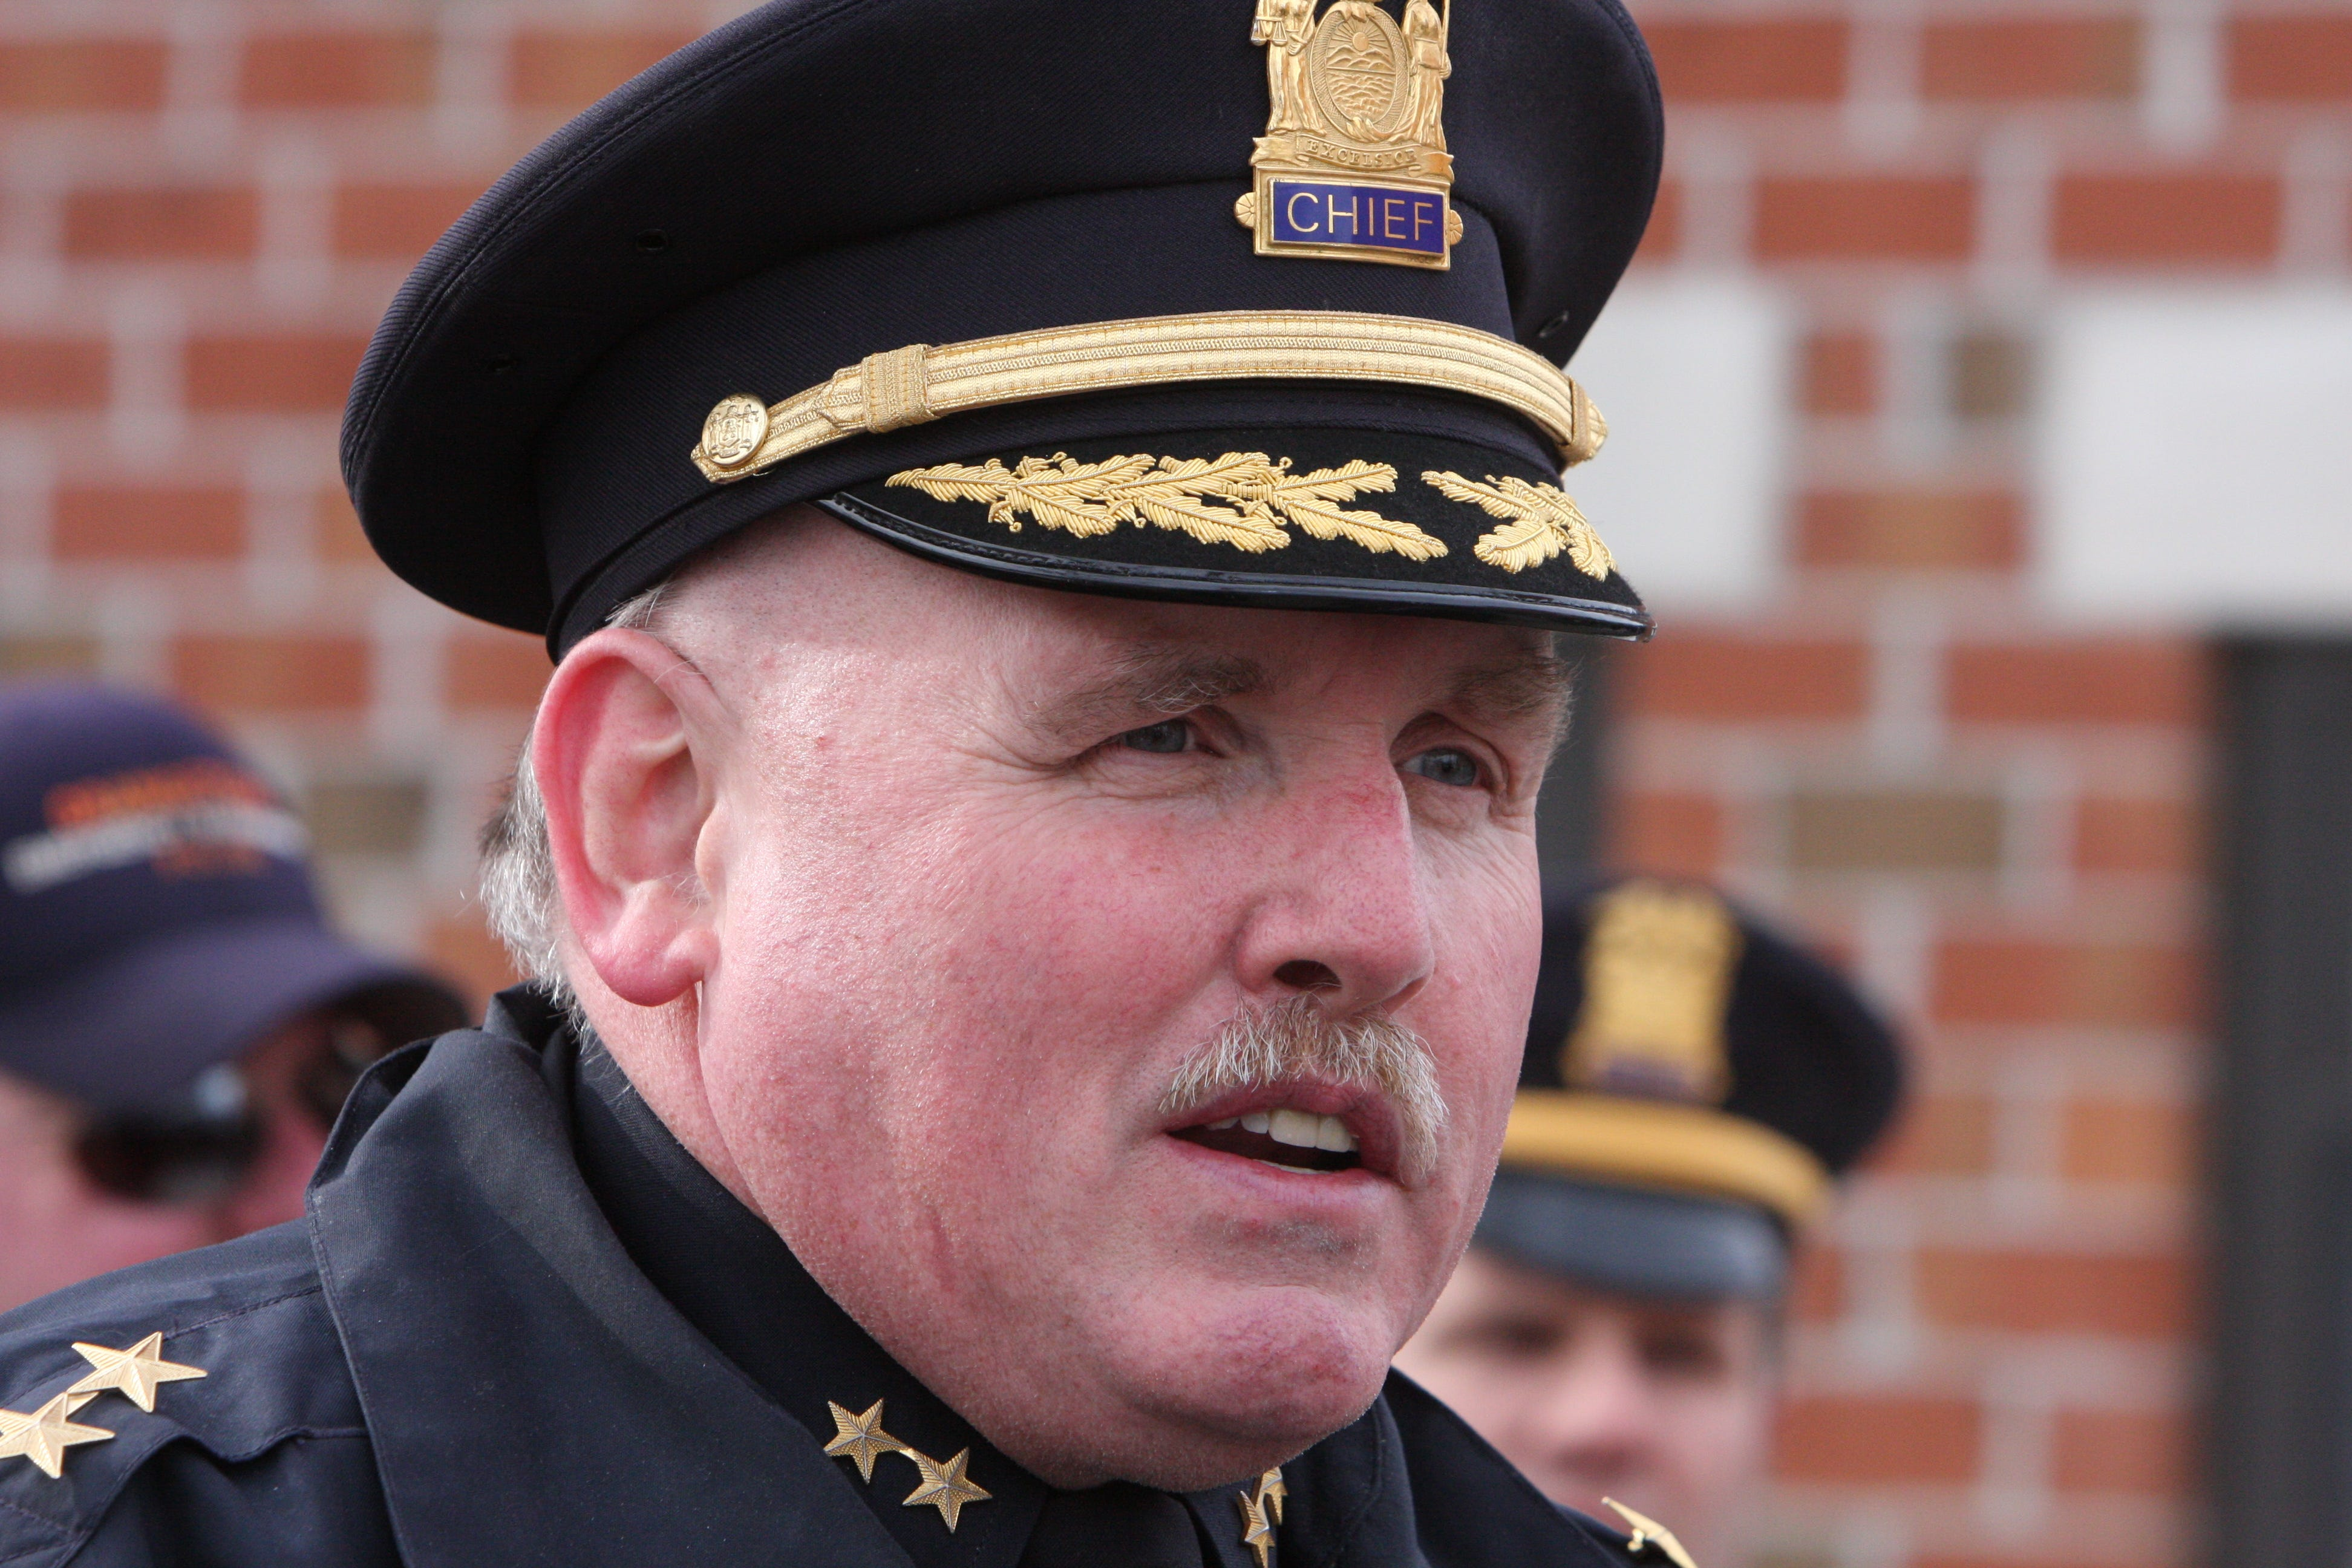 Orangetown Police Chief Kevin Nulty  cashed in days worth $165,523 when he retired.